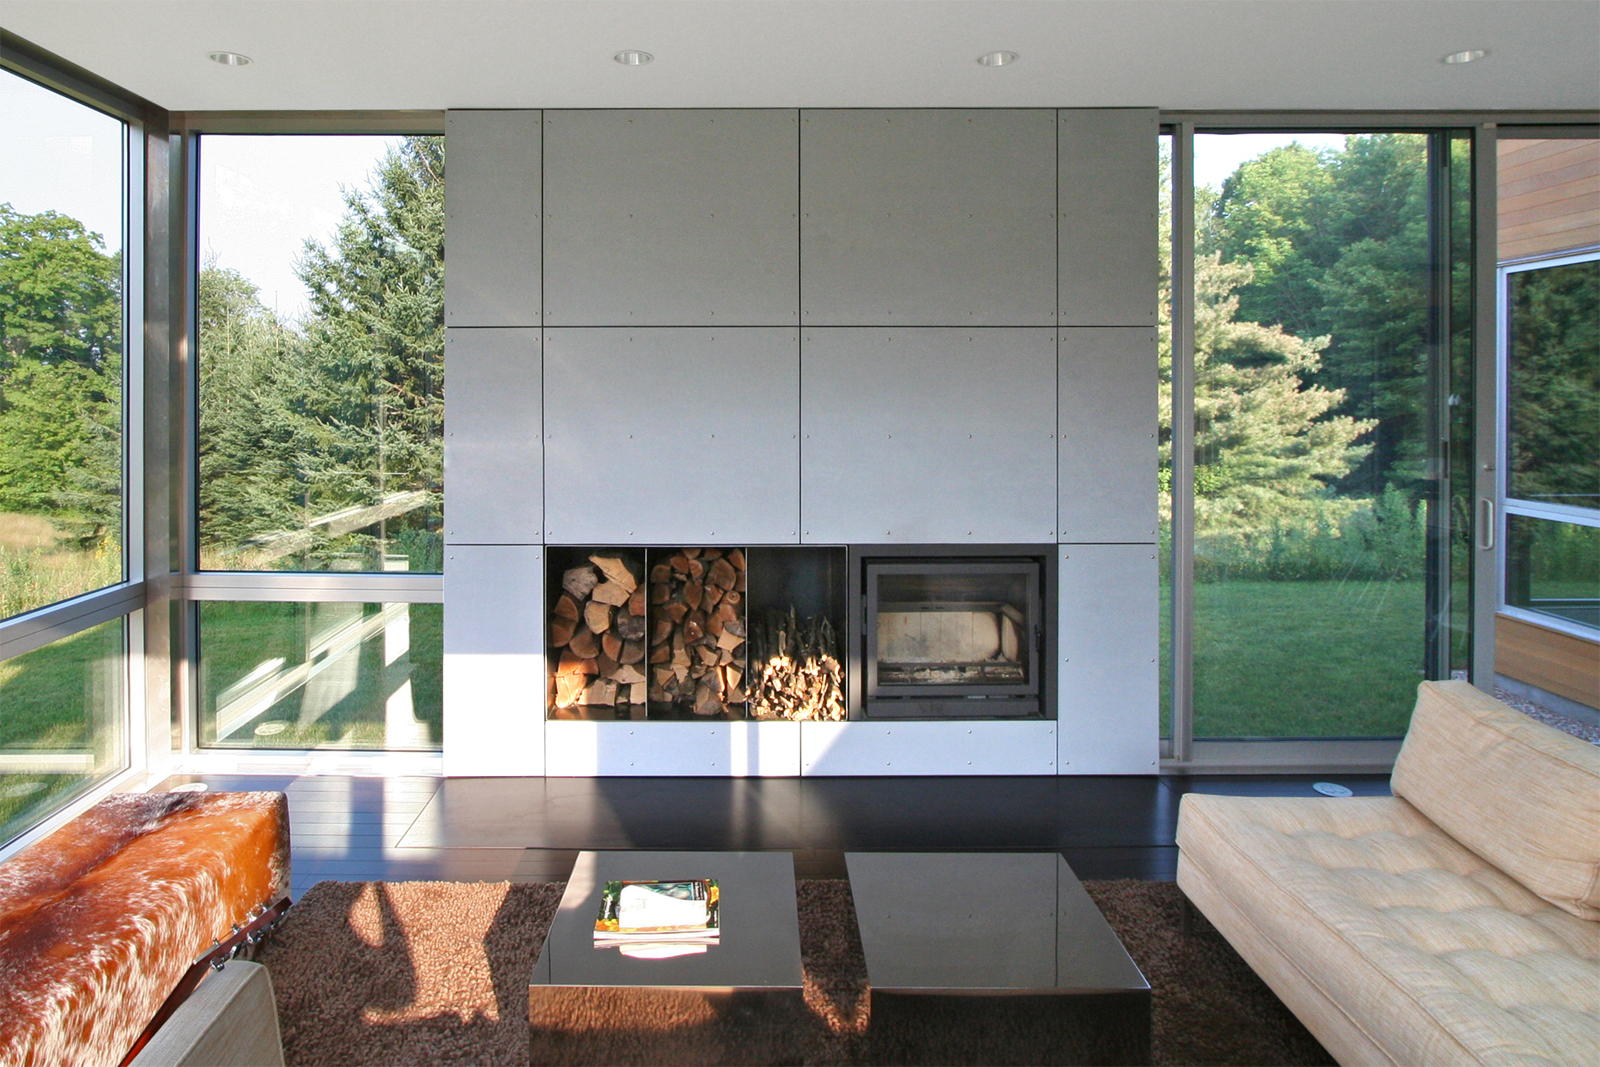 06-res4-resolution-4-architecture-modern-modular-home-prefab-sunset-ridge-house-interior-living-room.jpg